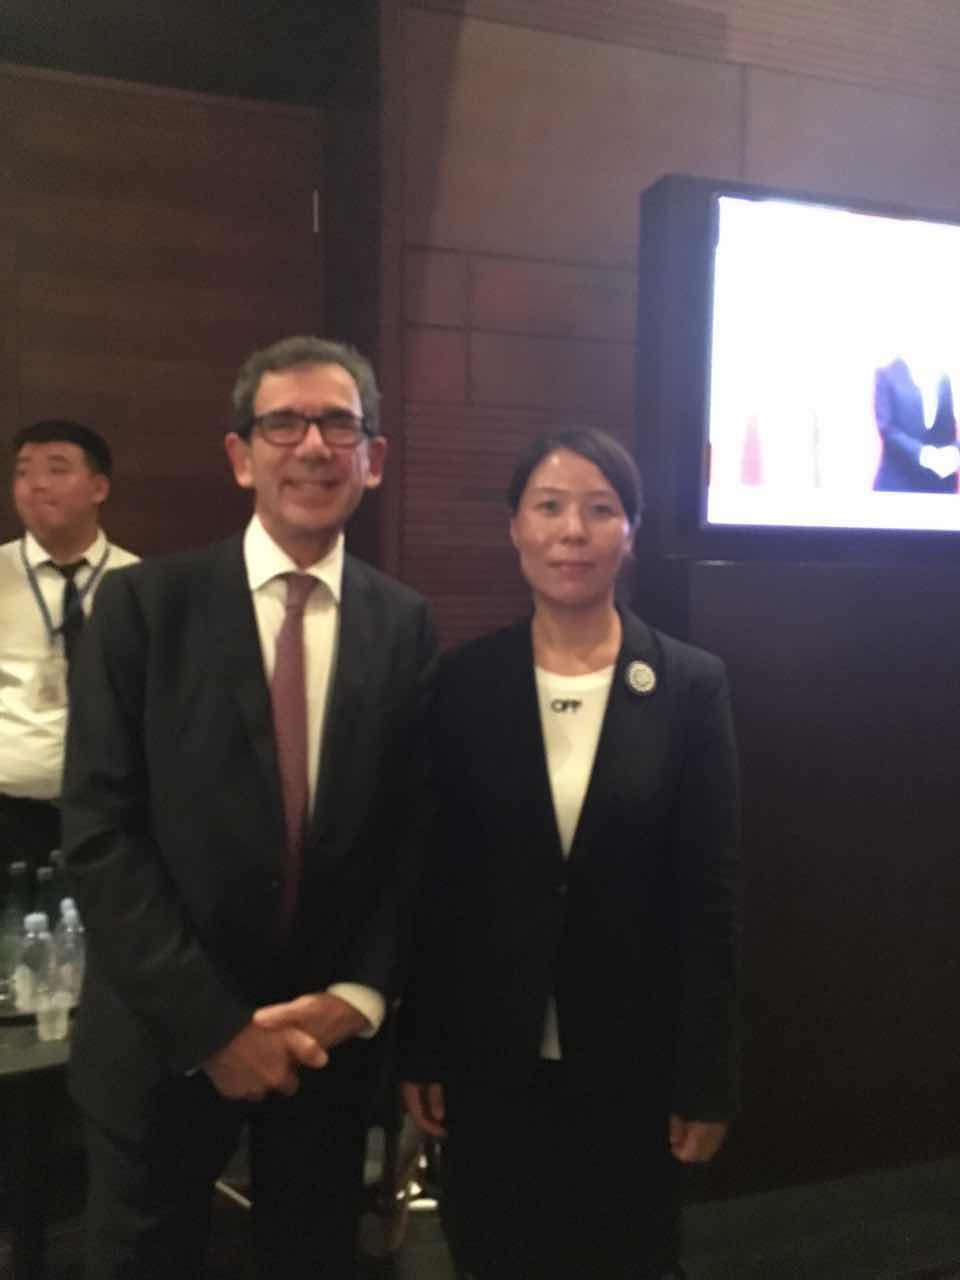 French Ambassador to China Maurice Gourdault-Montagne and Secretary General Cui Jianghong of Cultural Exchange Organization of Presenting China to the World